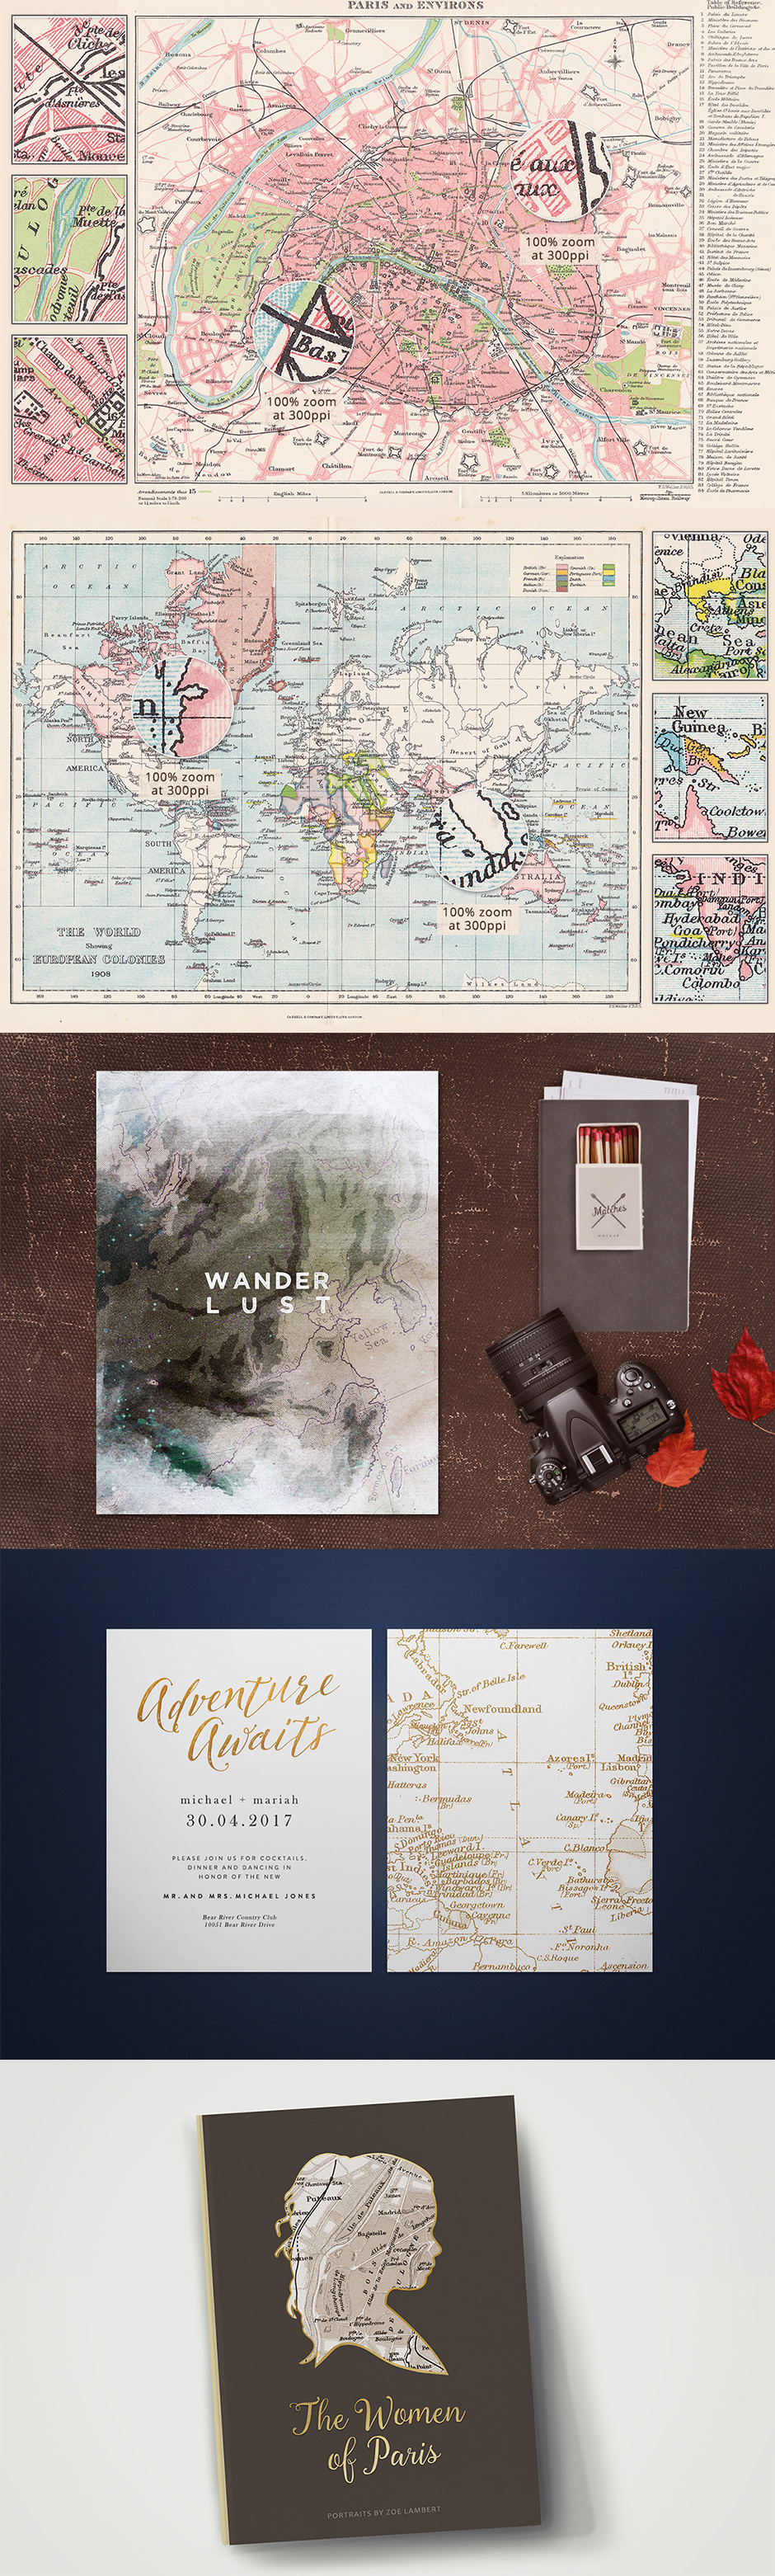 Antique Maps Vol. 1